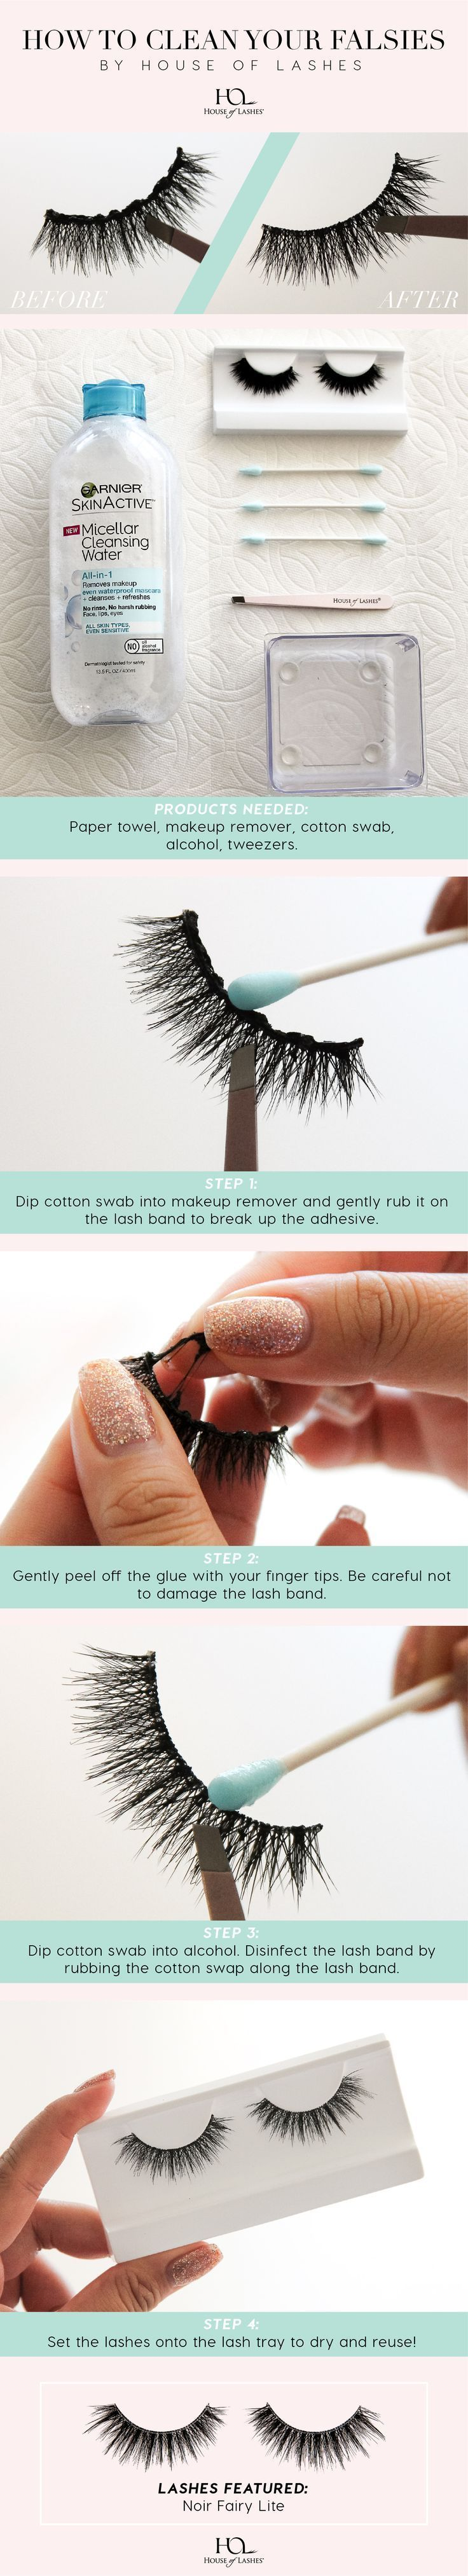 How To Clean Your False Lashes by. House of Lashes:   Products needed: Paper towel, makeup remover, cotton swab, alcohol, tweezers.  Step 1. Dip cotton swab into makeup remover and gently rub it on the lash band to break up the adhesive.    Step 2. Gently https://www.youtube.com/channel/UC76YOQIJa6Gej0_FuhRQxJg